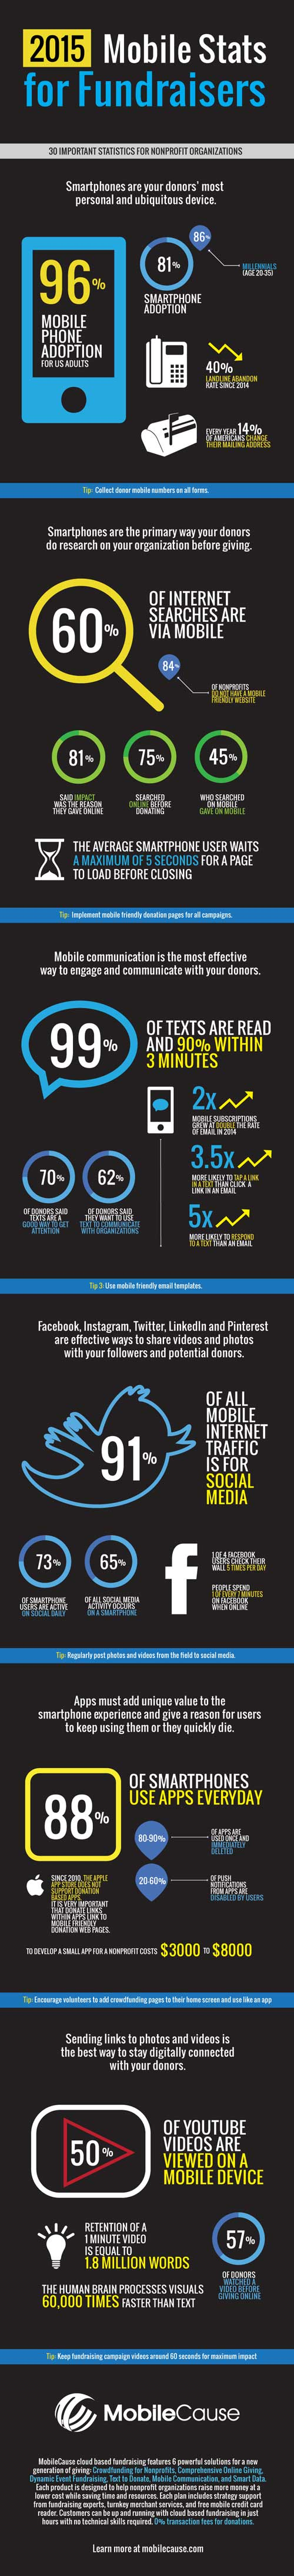 mobile giving infographic